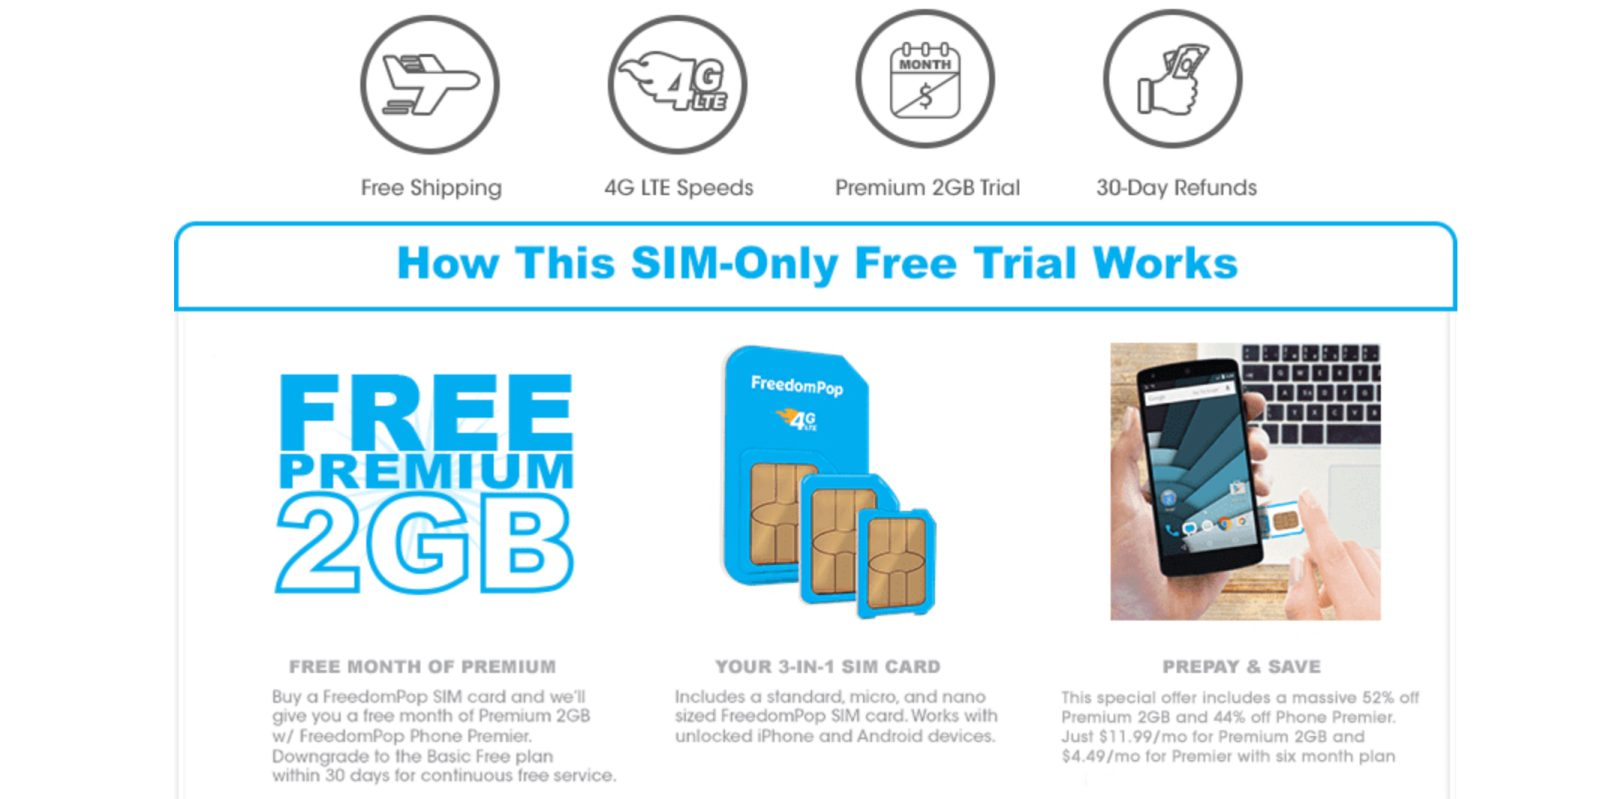 Freedom Pop offers free 2GB of 4G data per month, perfect